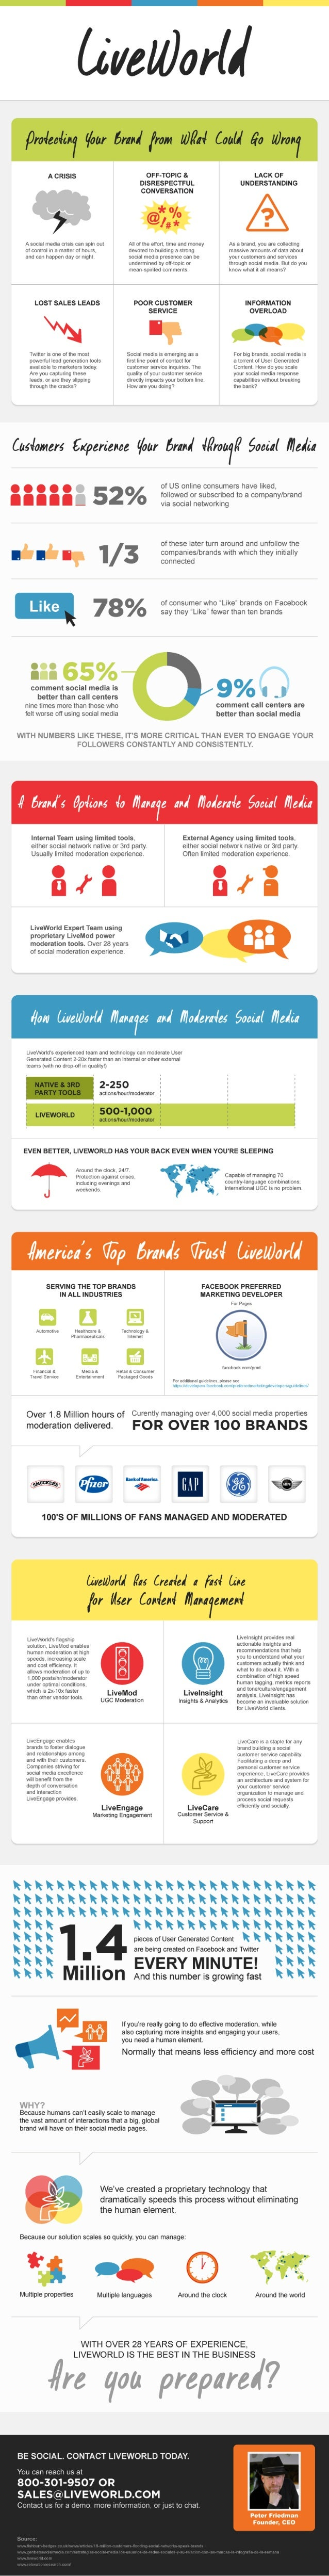 LiveWorld About-Us Infographic